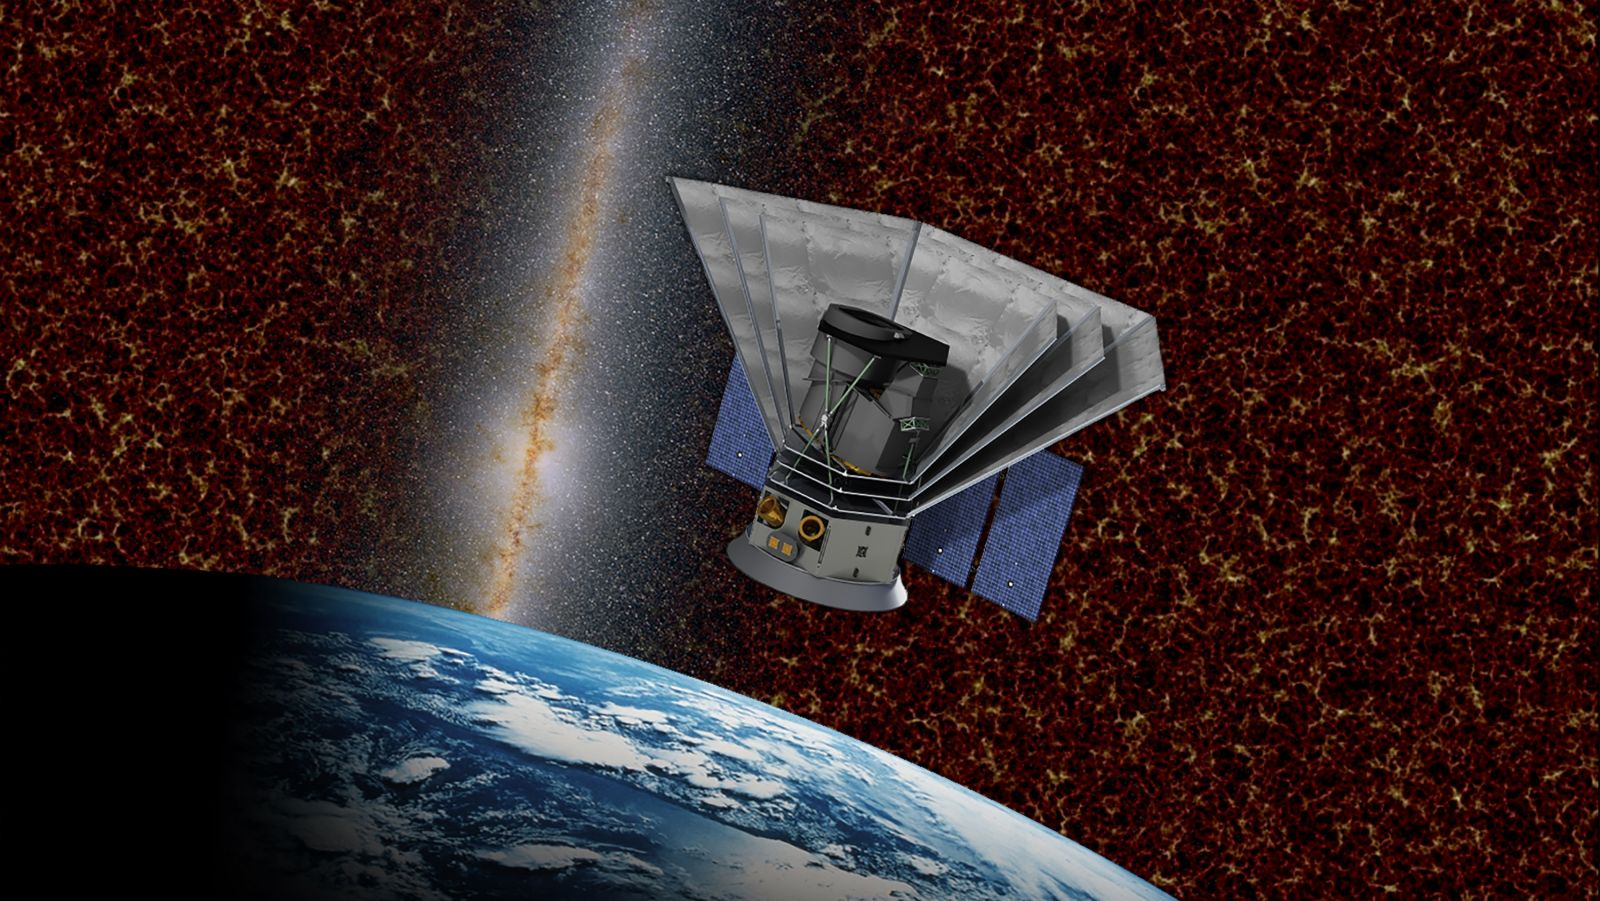 NASA's Spectro-Photometer for the History of the Universe, Epoch of Reionization and Ices Explorer or SPHEREx spacecraft is currently slated for a 2023 liftoff. It is hoped that SPHEREx will help astronomers how common the elements of life are throughout the universe. Image Credit: Caltech